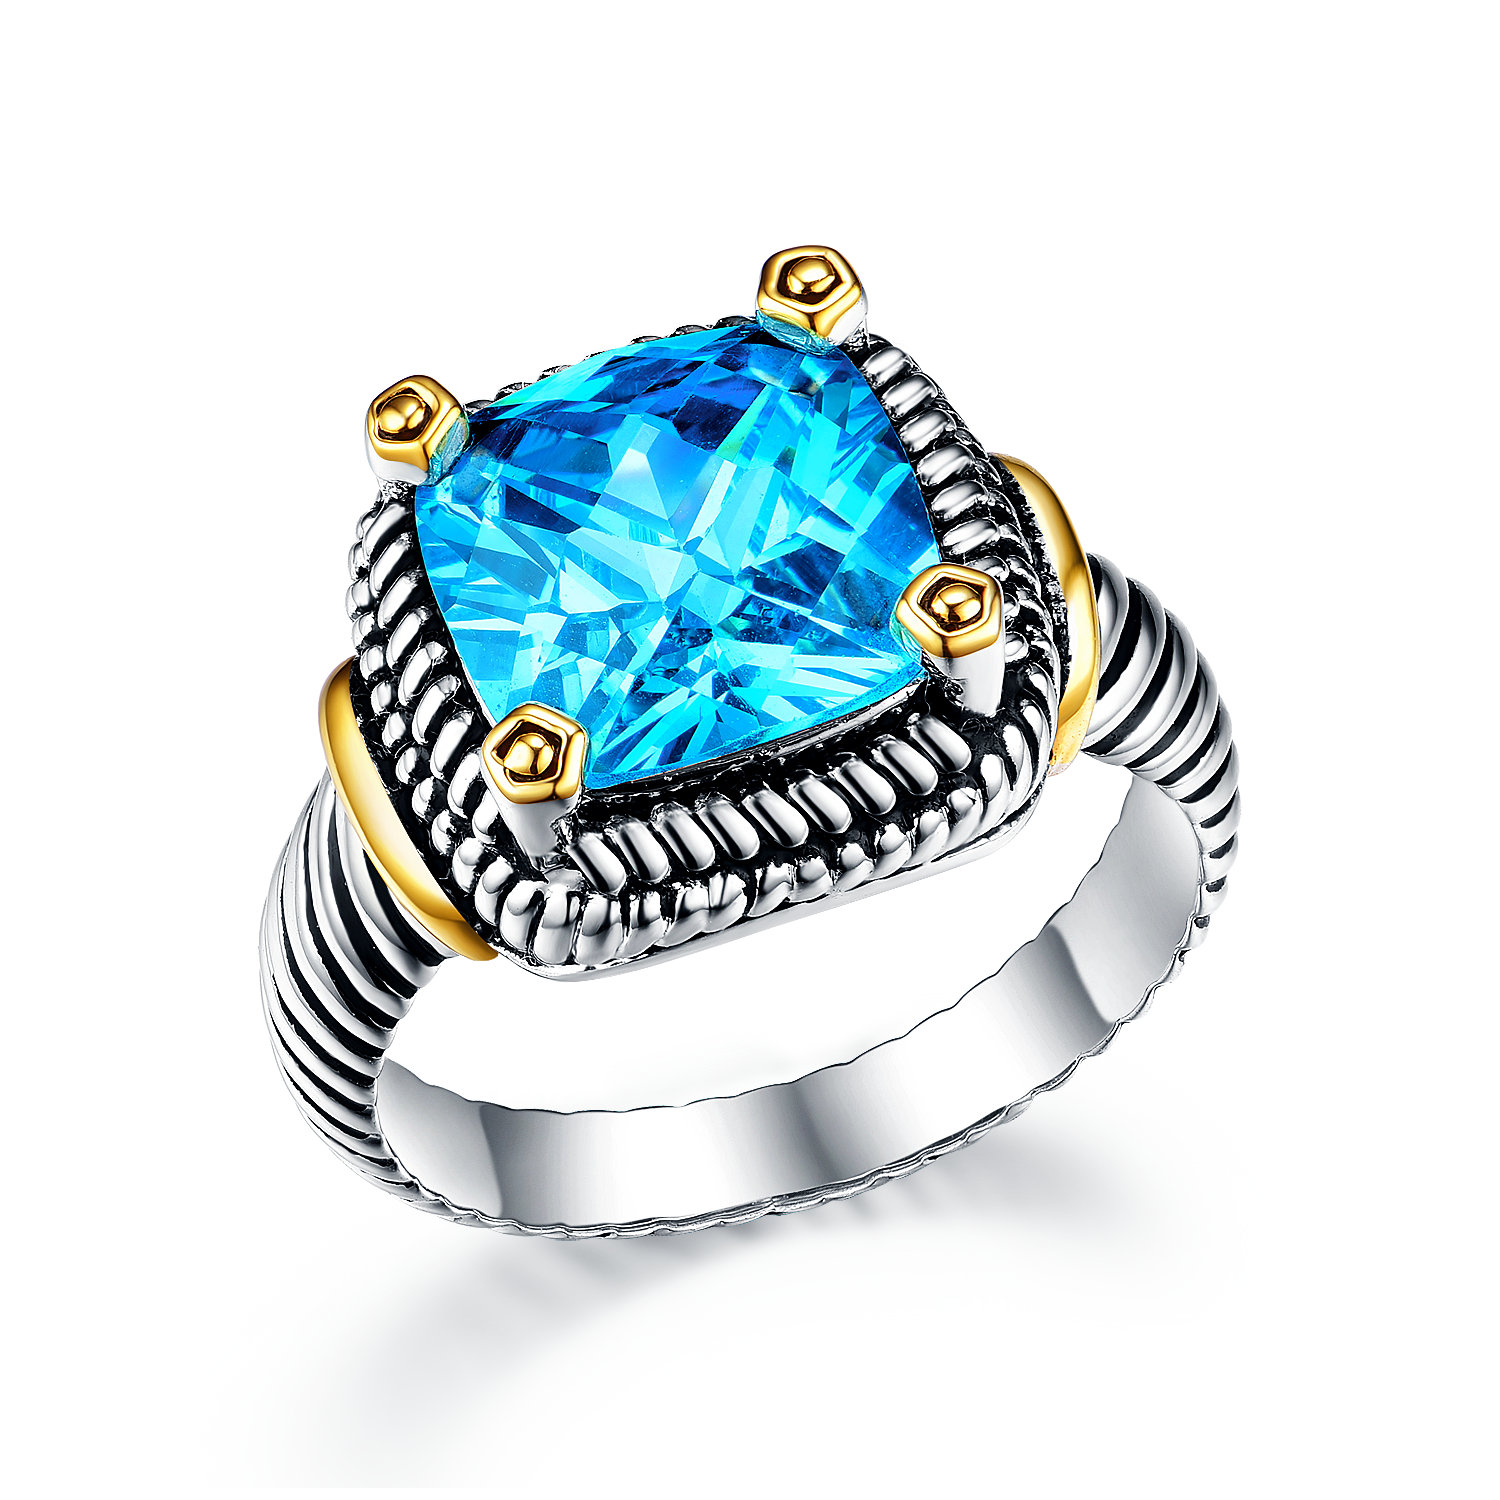 ST2764R-Designer inspired Cable Two-tone Square Ring with an Aquamarine Stone in brass from China reliable jewelry Manufacturer